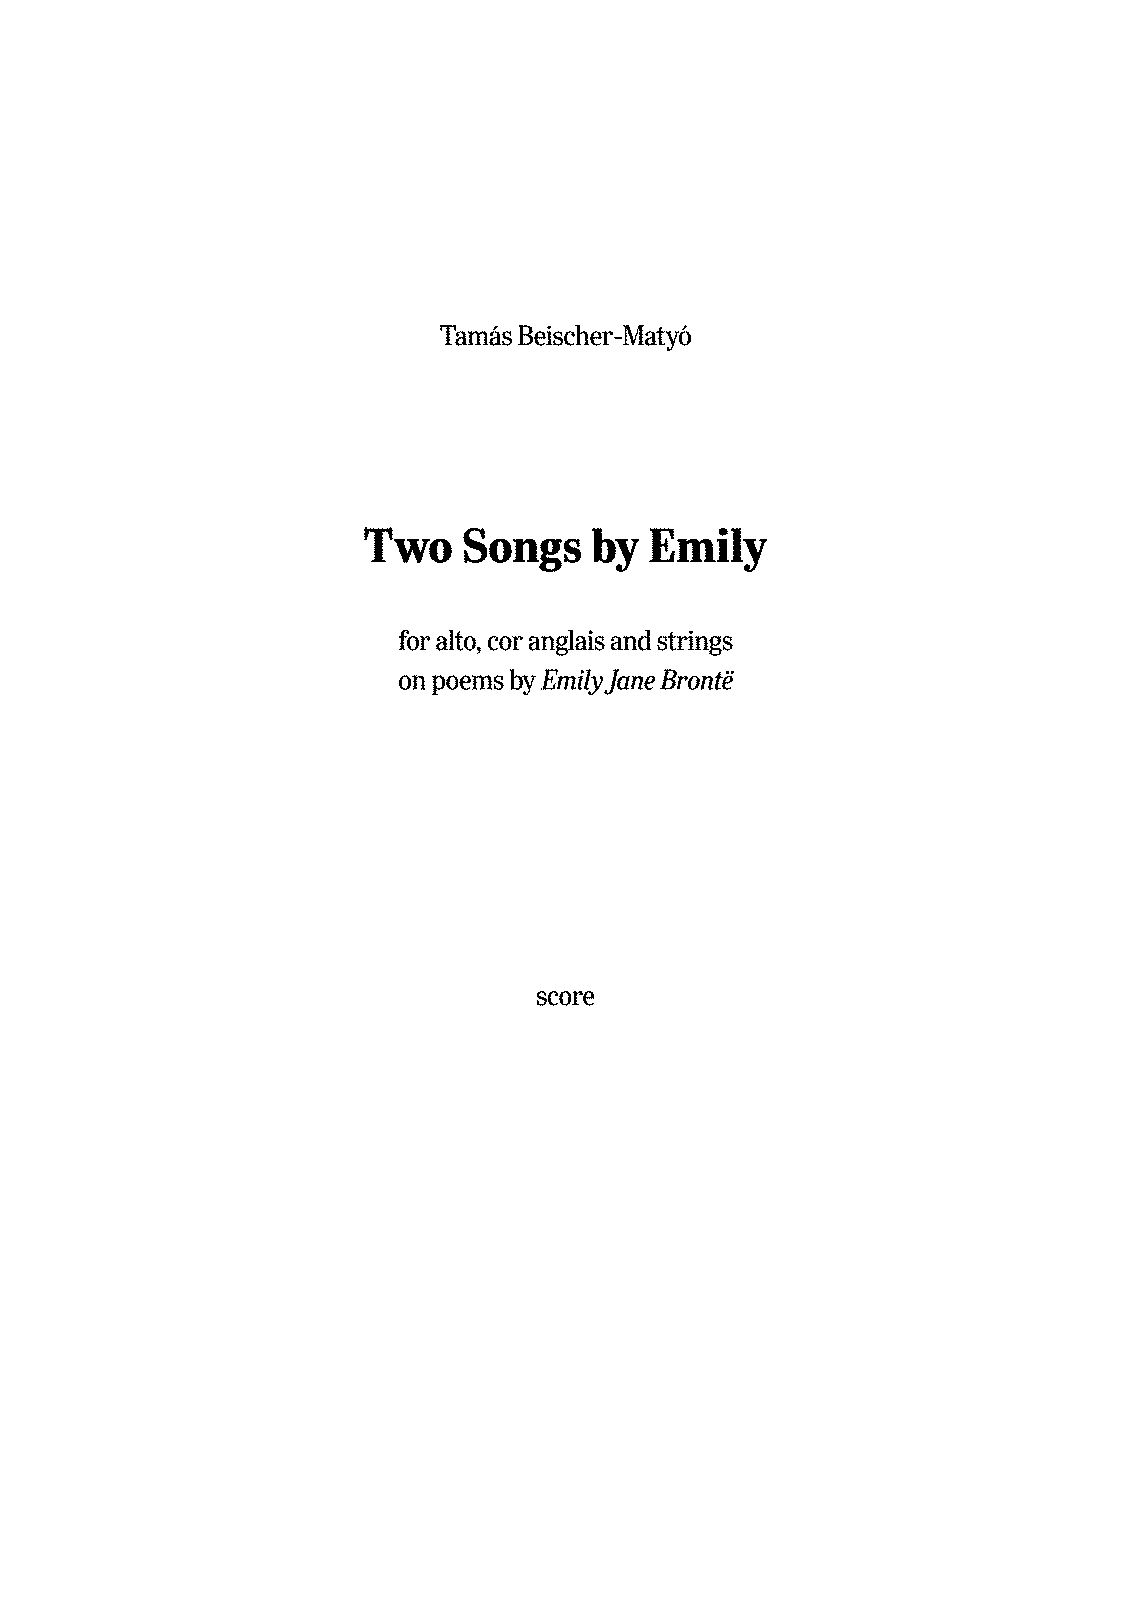 PMLP139522-Two Songs by Emily - score 2010 10 07.pdf